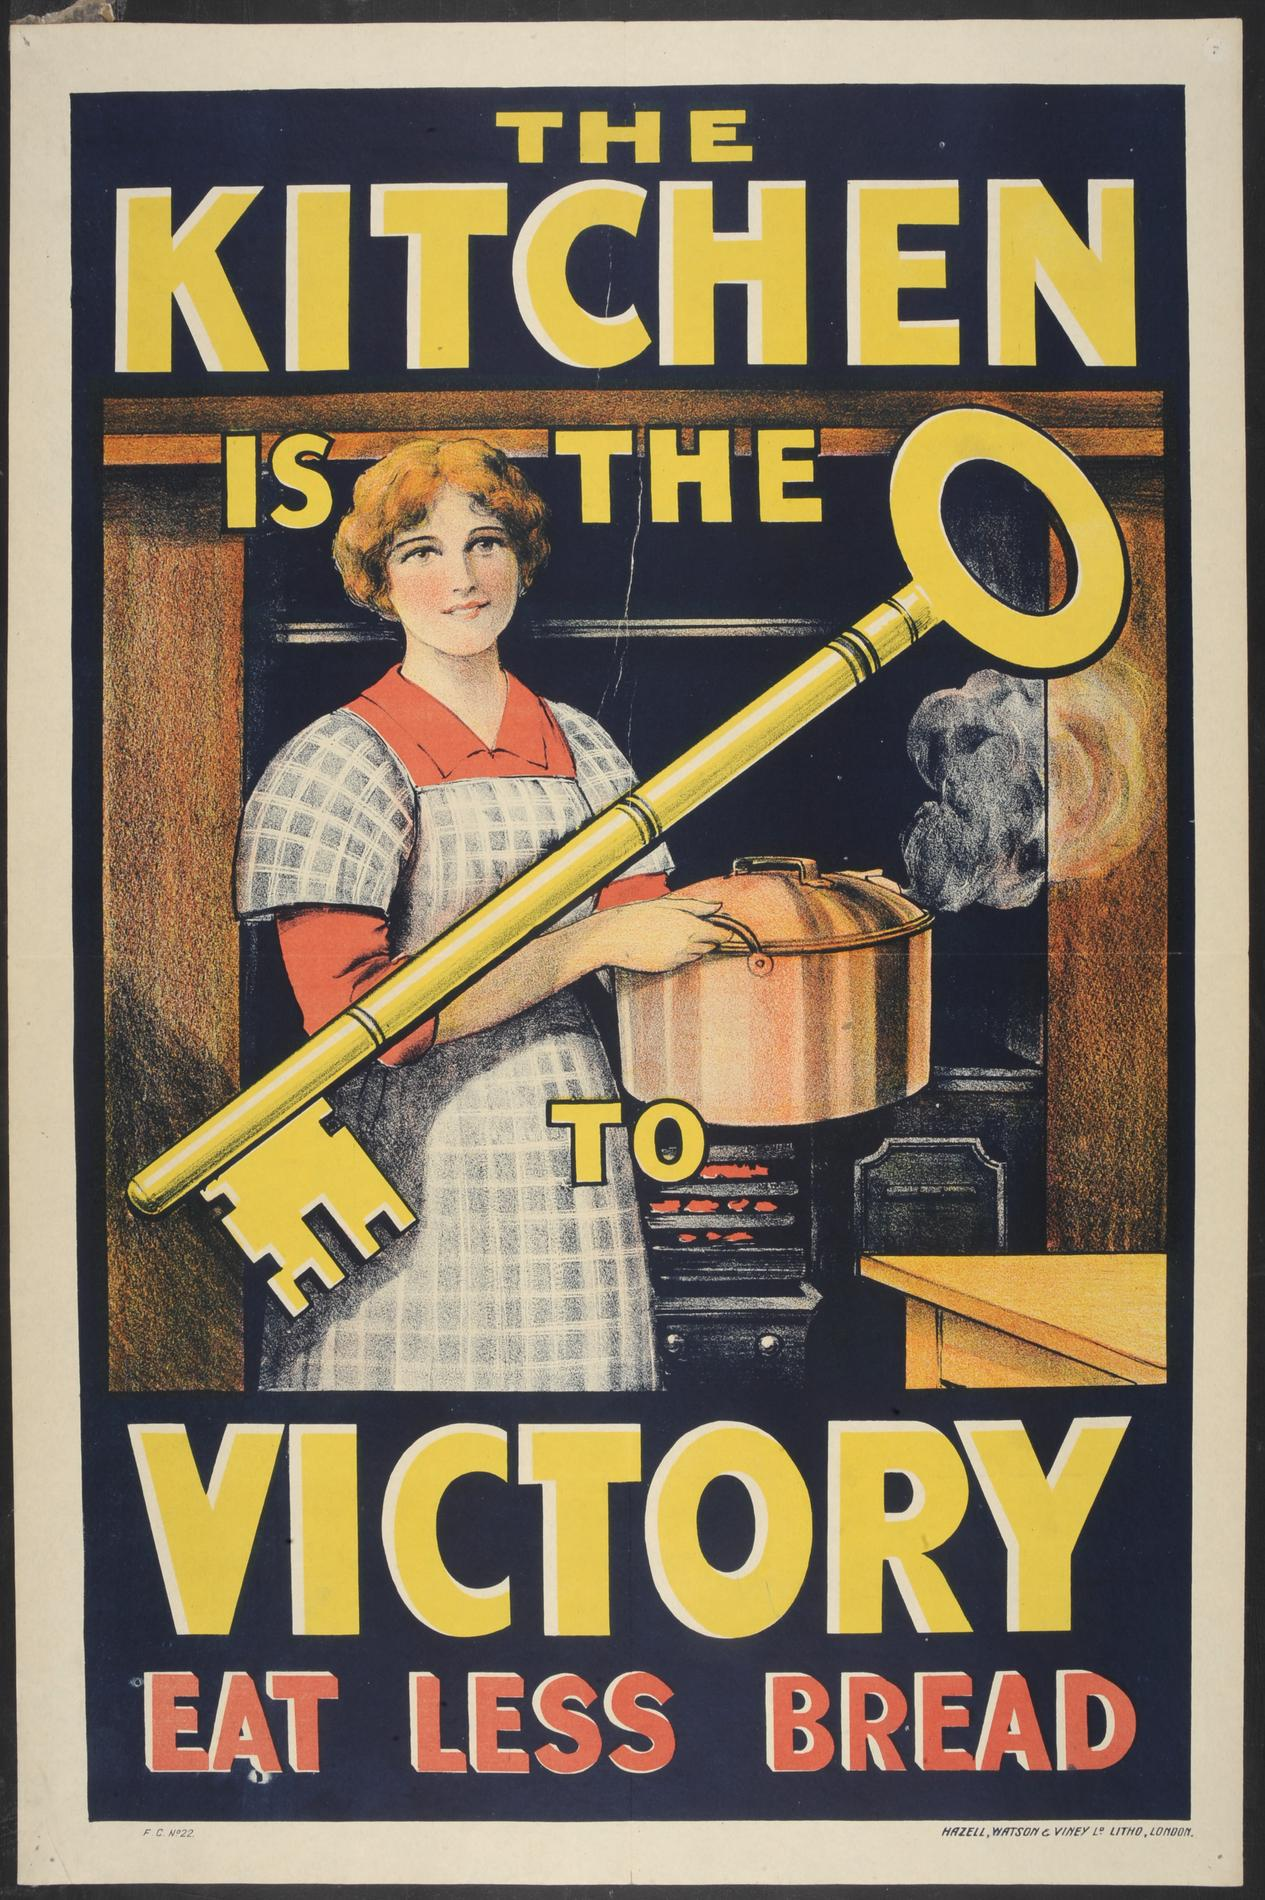 The kitchen is the key to victory. Eat less bread (Poster)